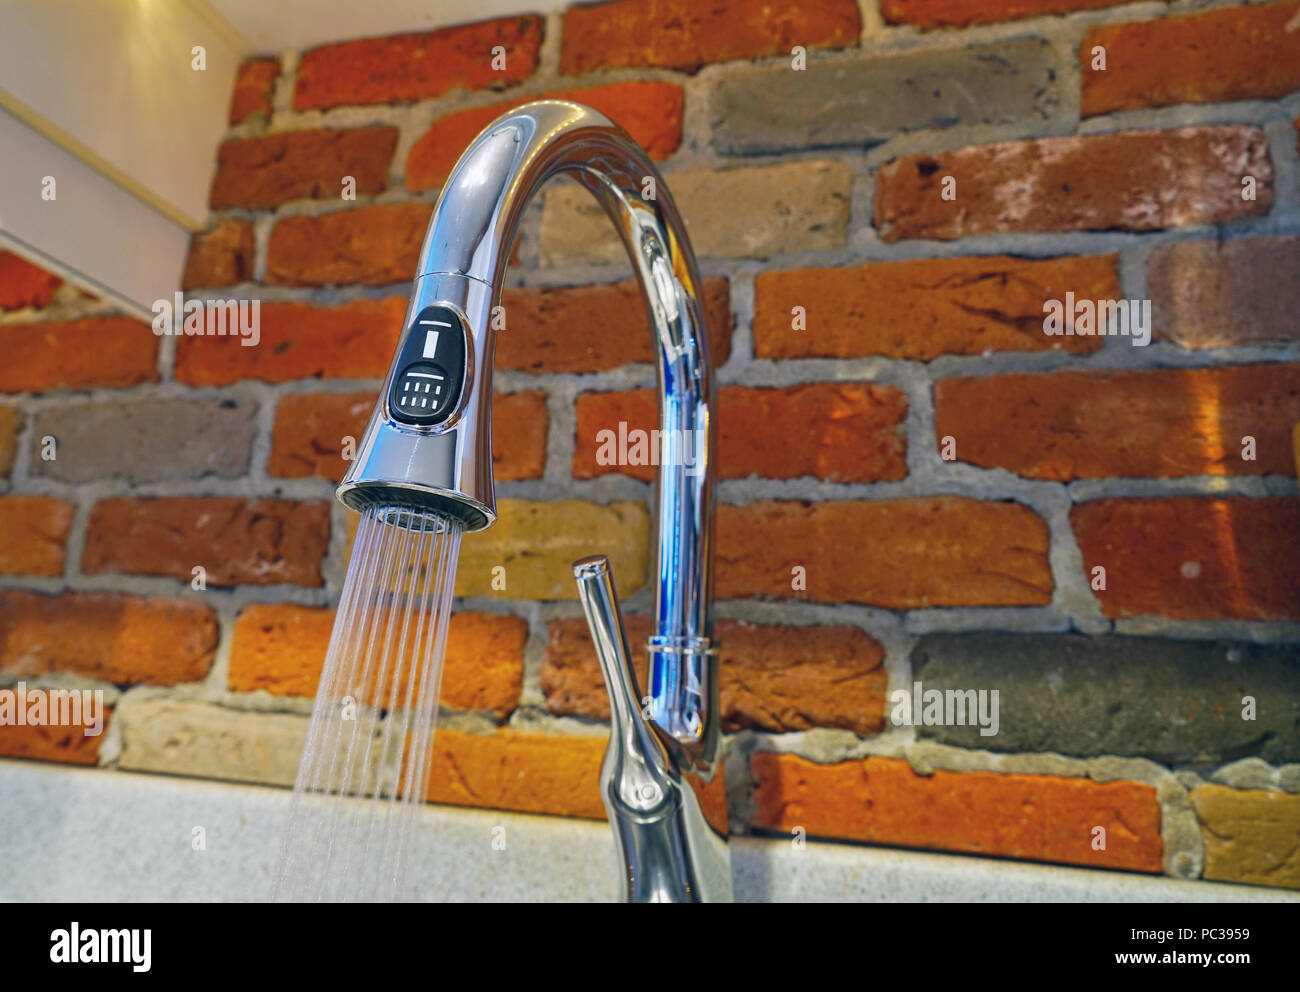 Montreal, Canada, July 31, 2018.Spray of water pouring out of kitchen faucet.Credit Mario Beauregard/Alamy Live News - Stock Image